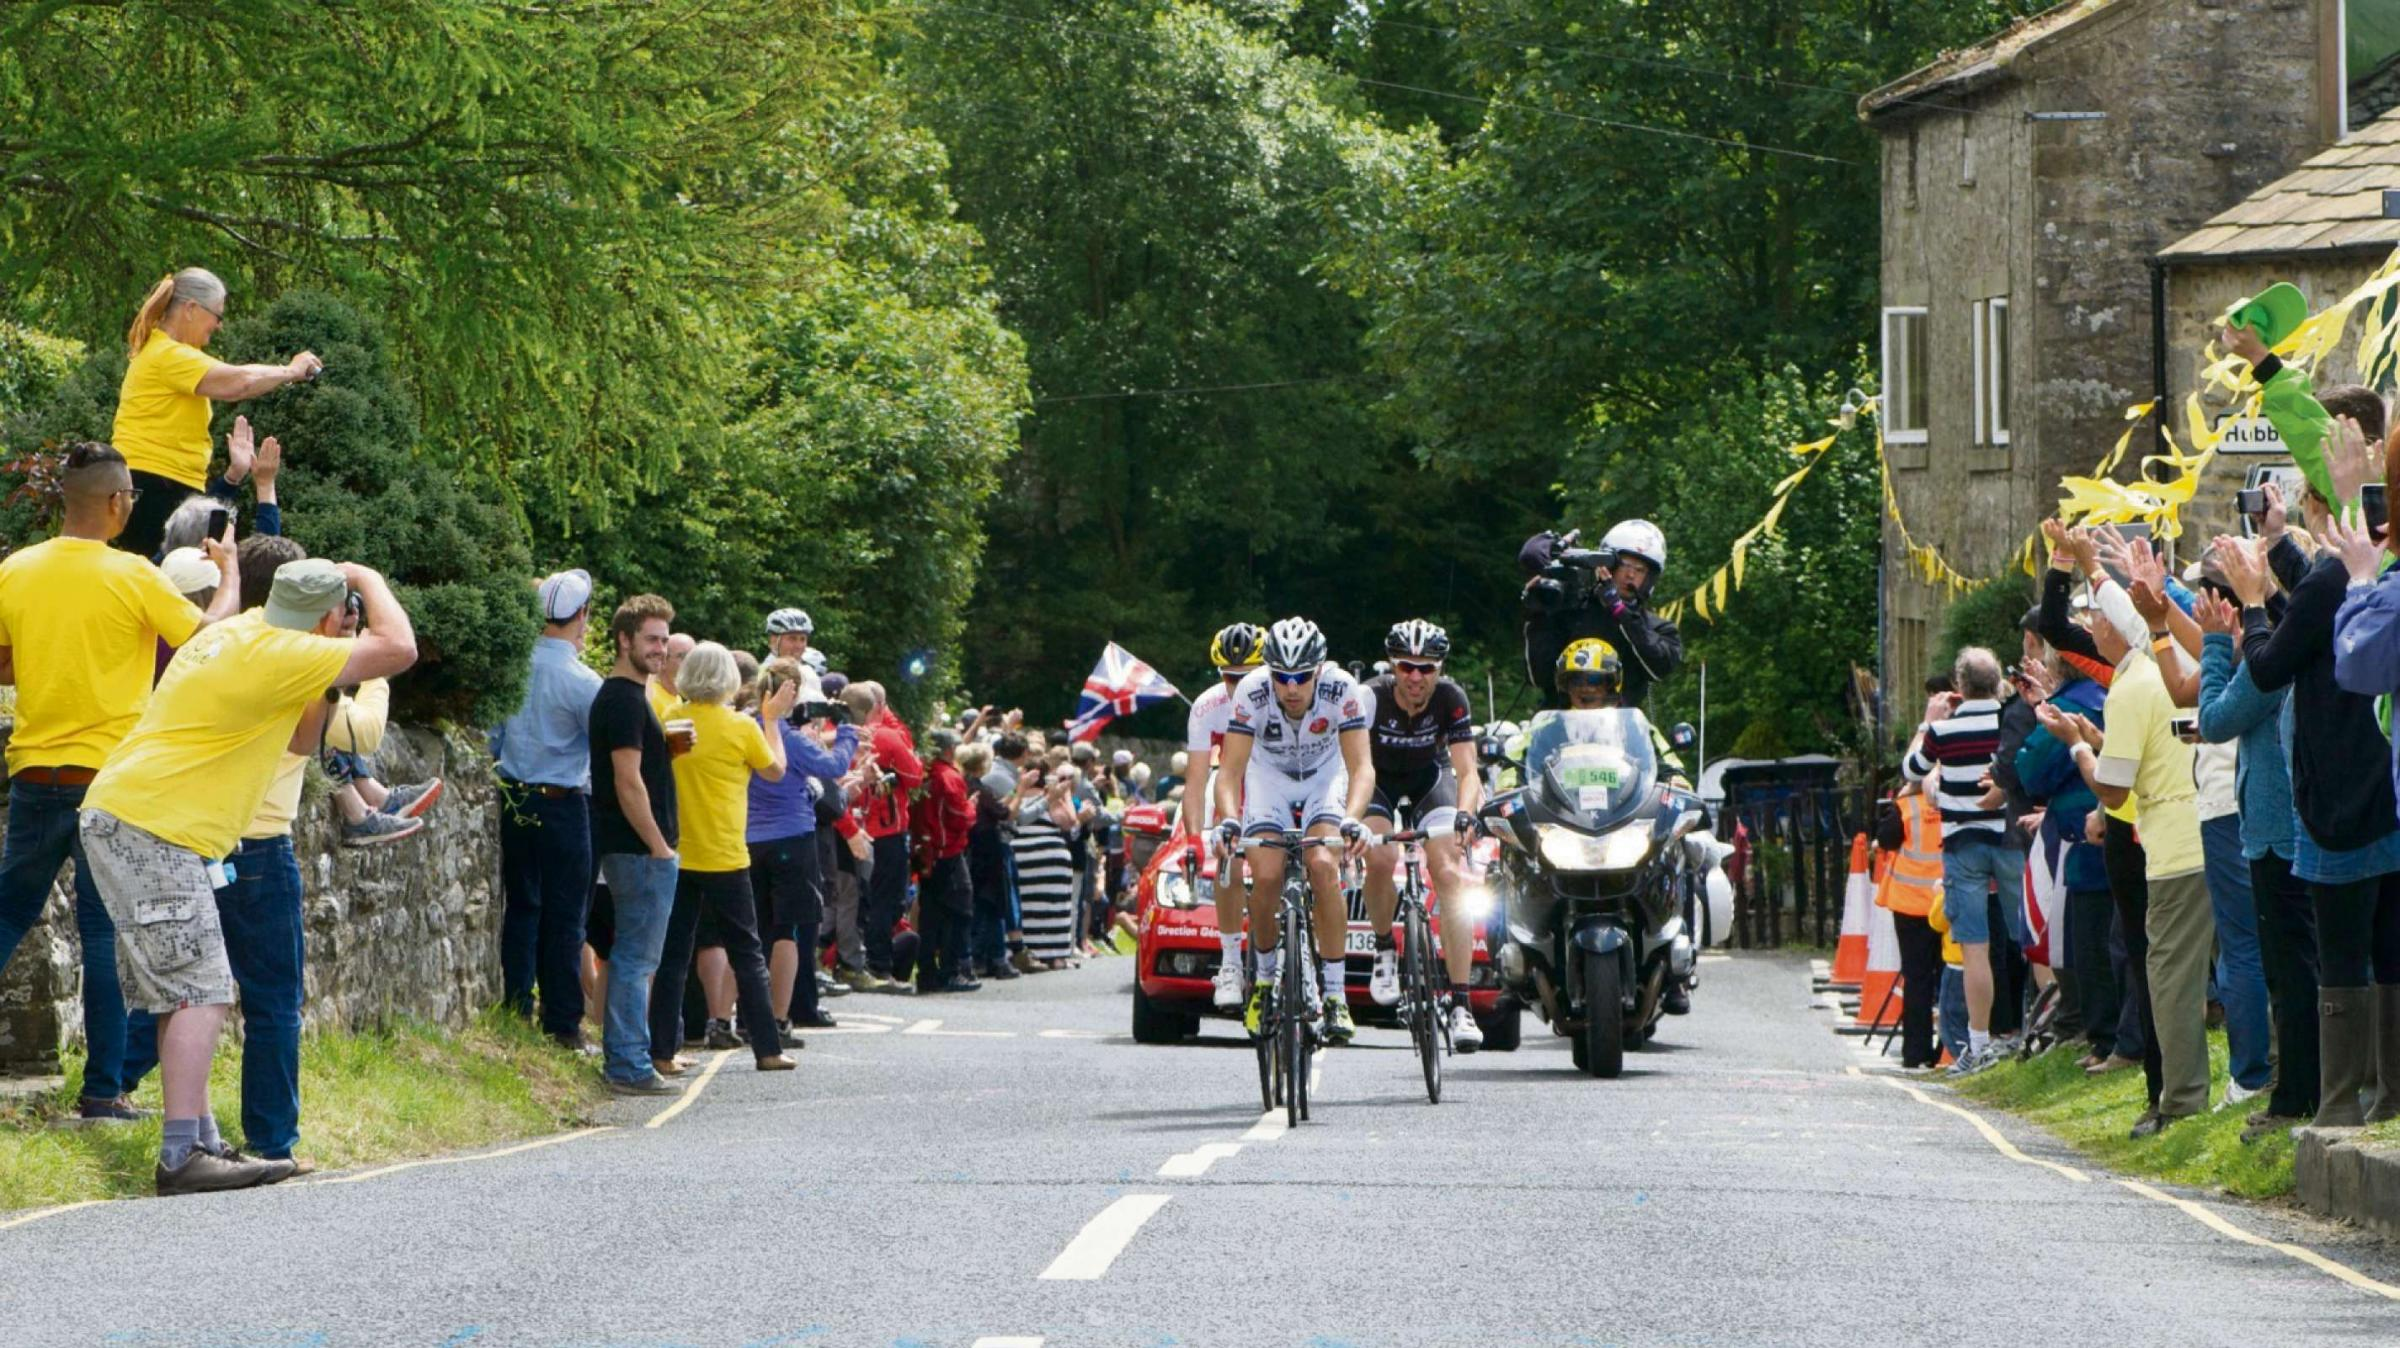 The Tour de France passes through Yorkshire. Picture by Brian Cleckner